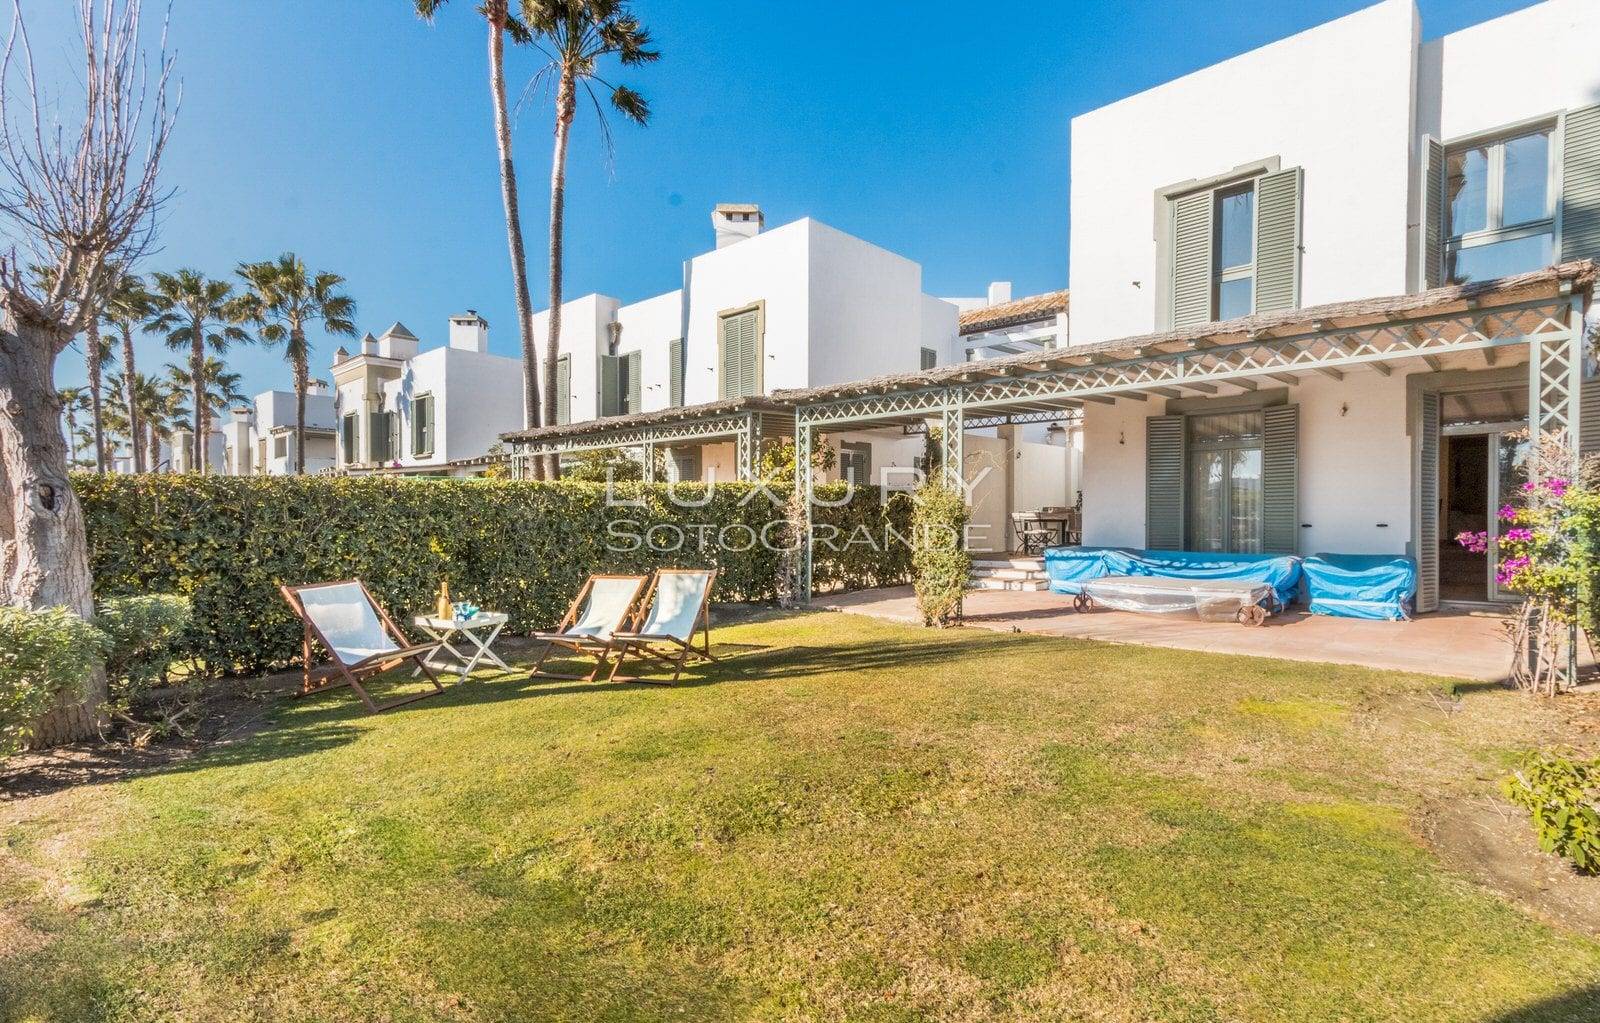 Townhouse for Sale at 100 Meters from the Beach, Marina Sotogrande